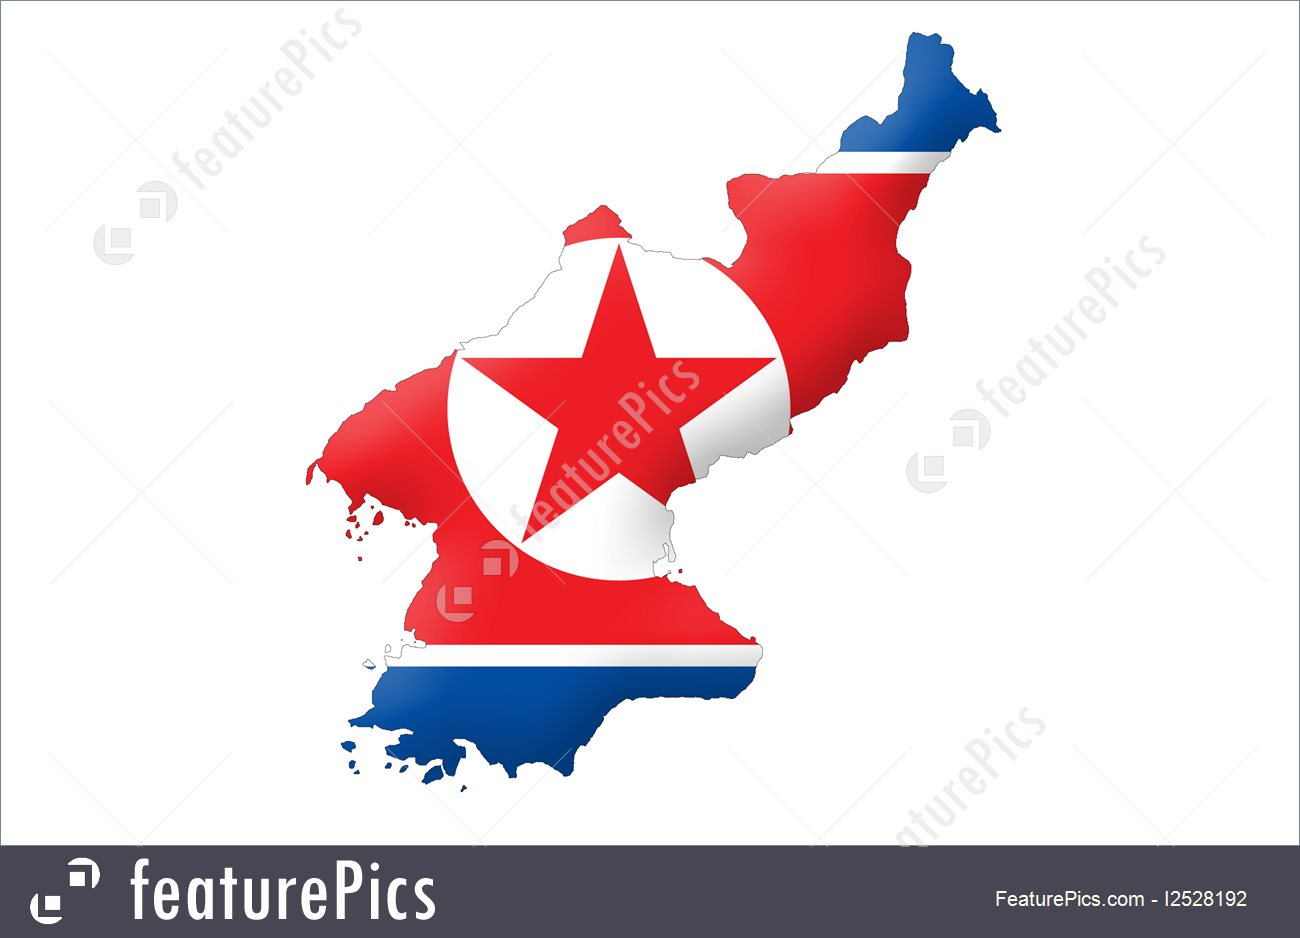 Signs And Info: Democratic People's Republic Of Korea.